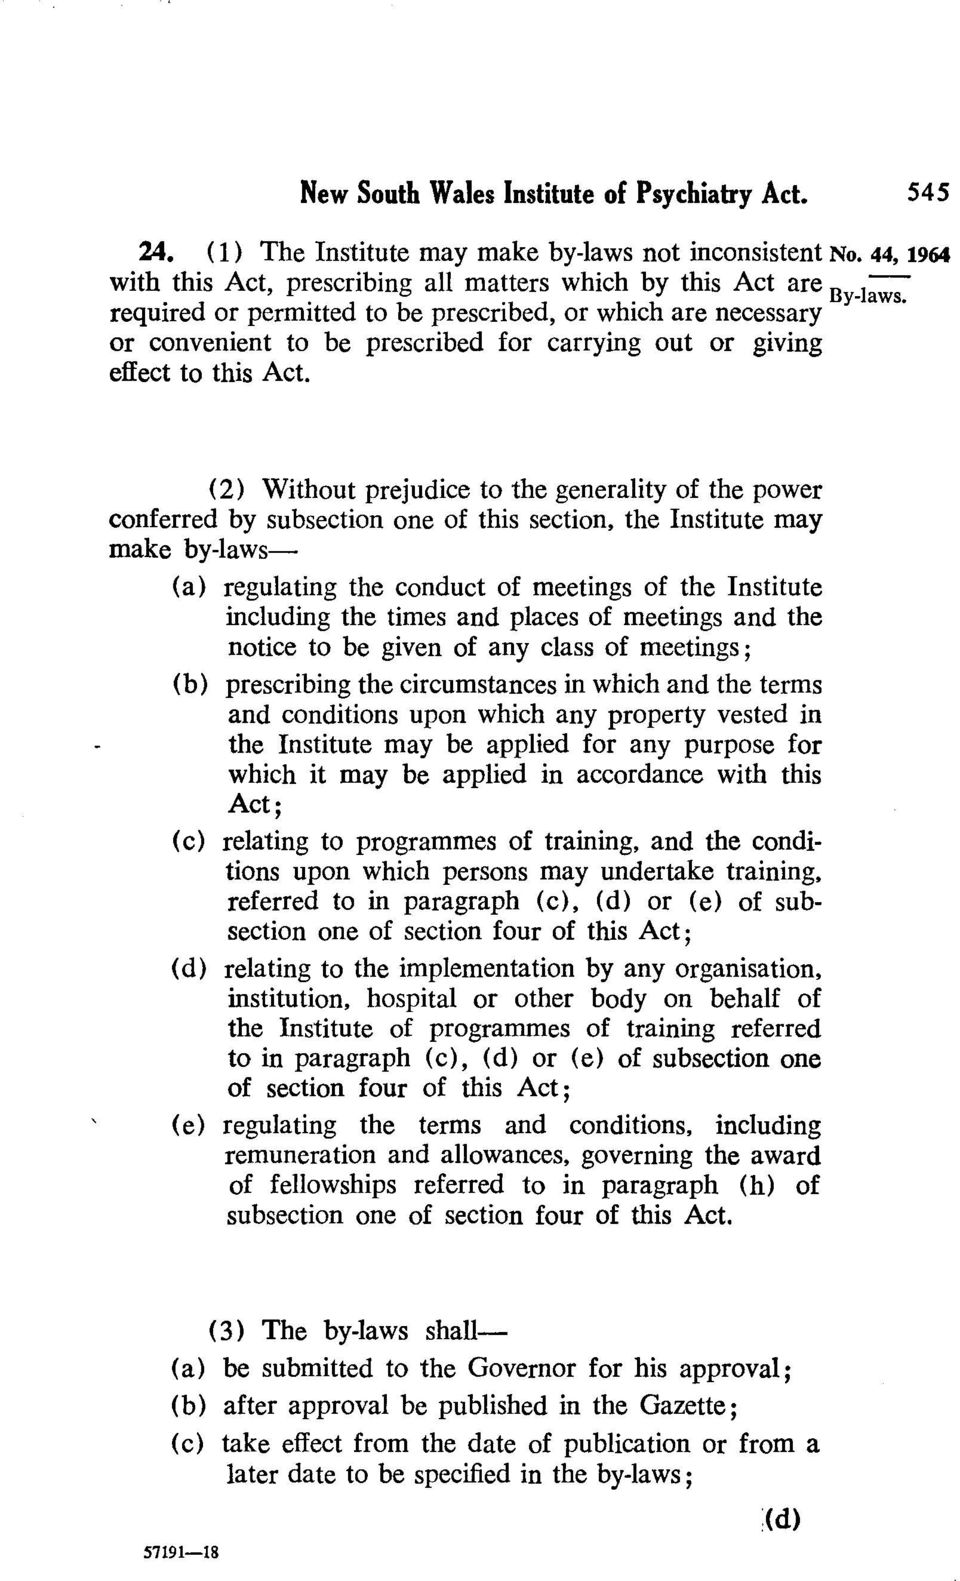 (2) Without prejudice to the generality of the power conferred by subsection one of this section, the Institute may make by-laws (a) regulating the conduct of meetings of the Institute including the